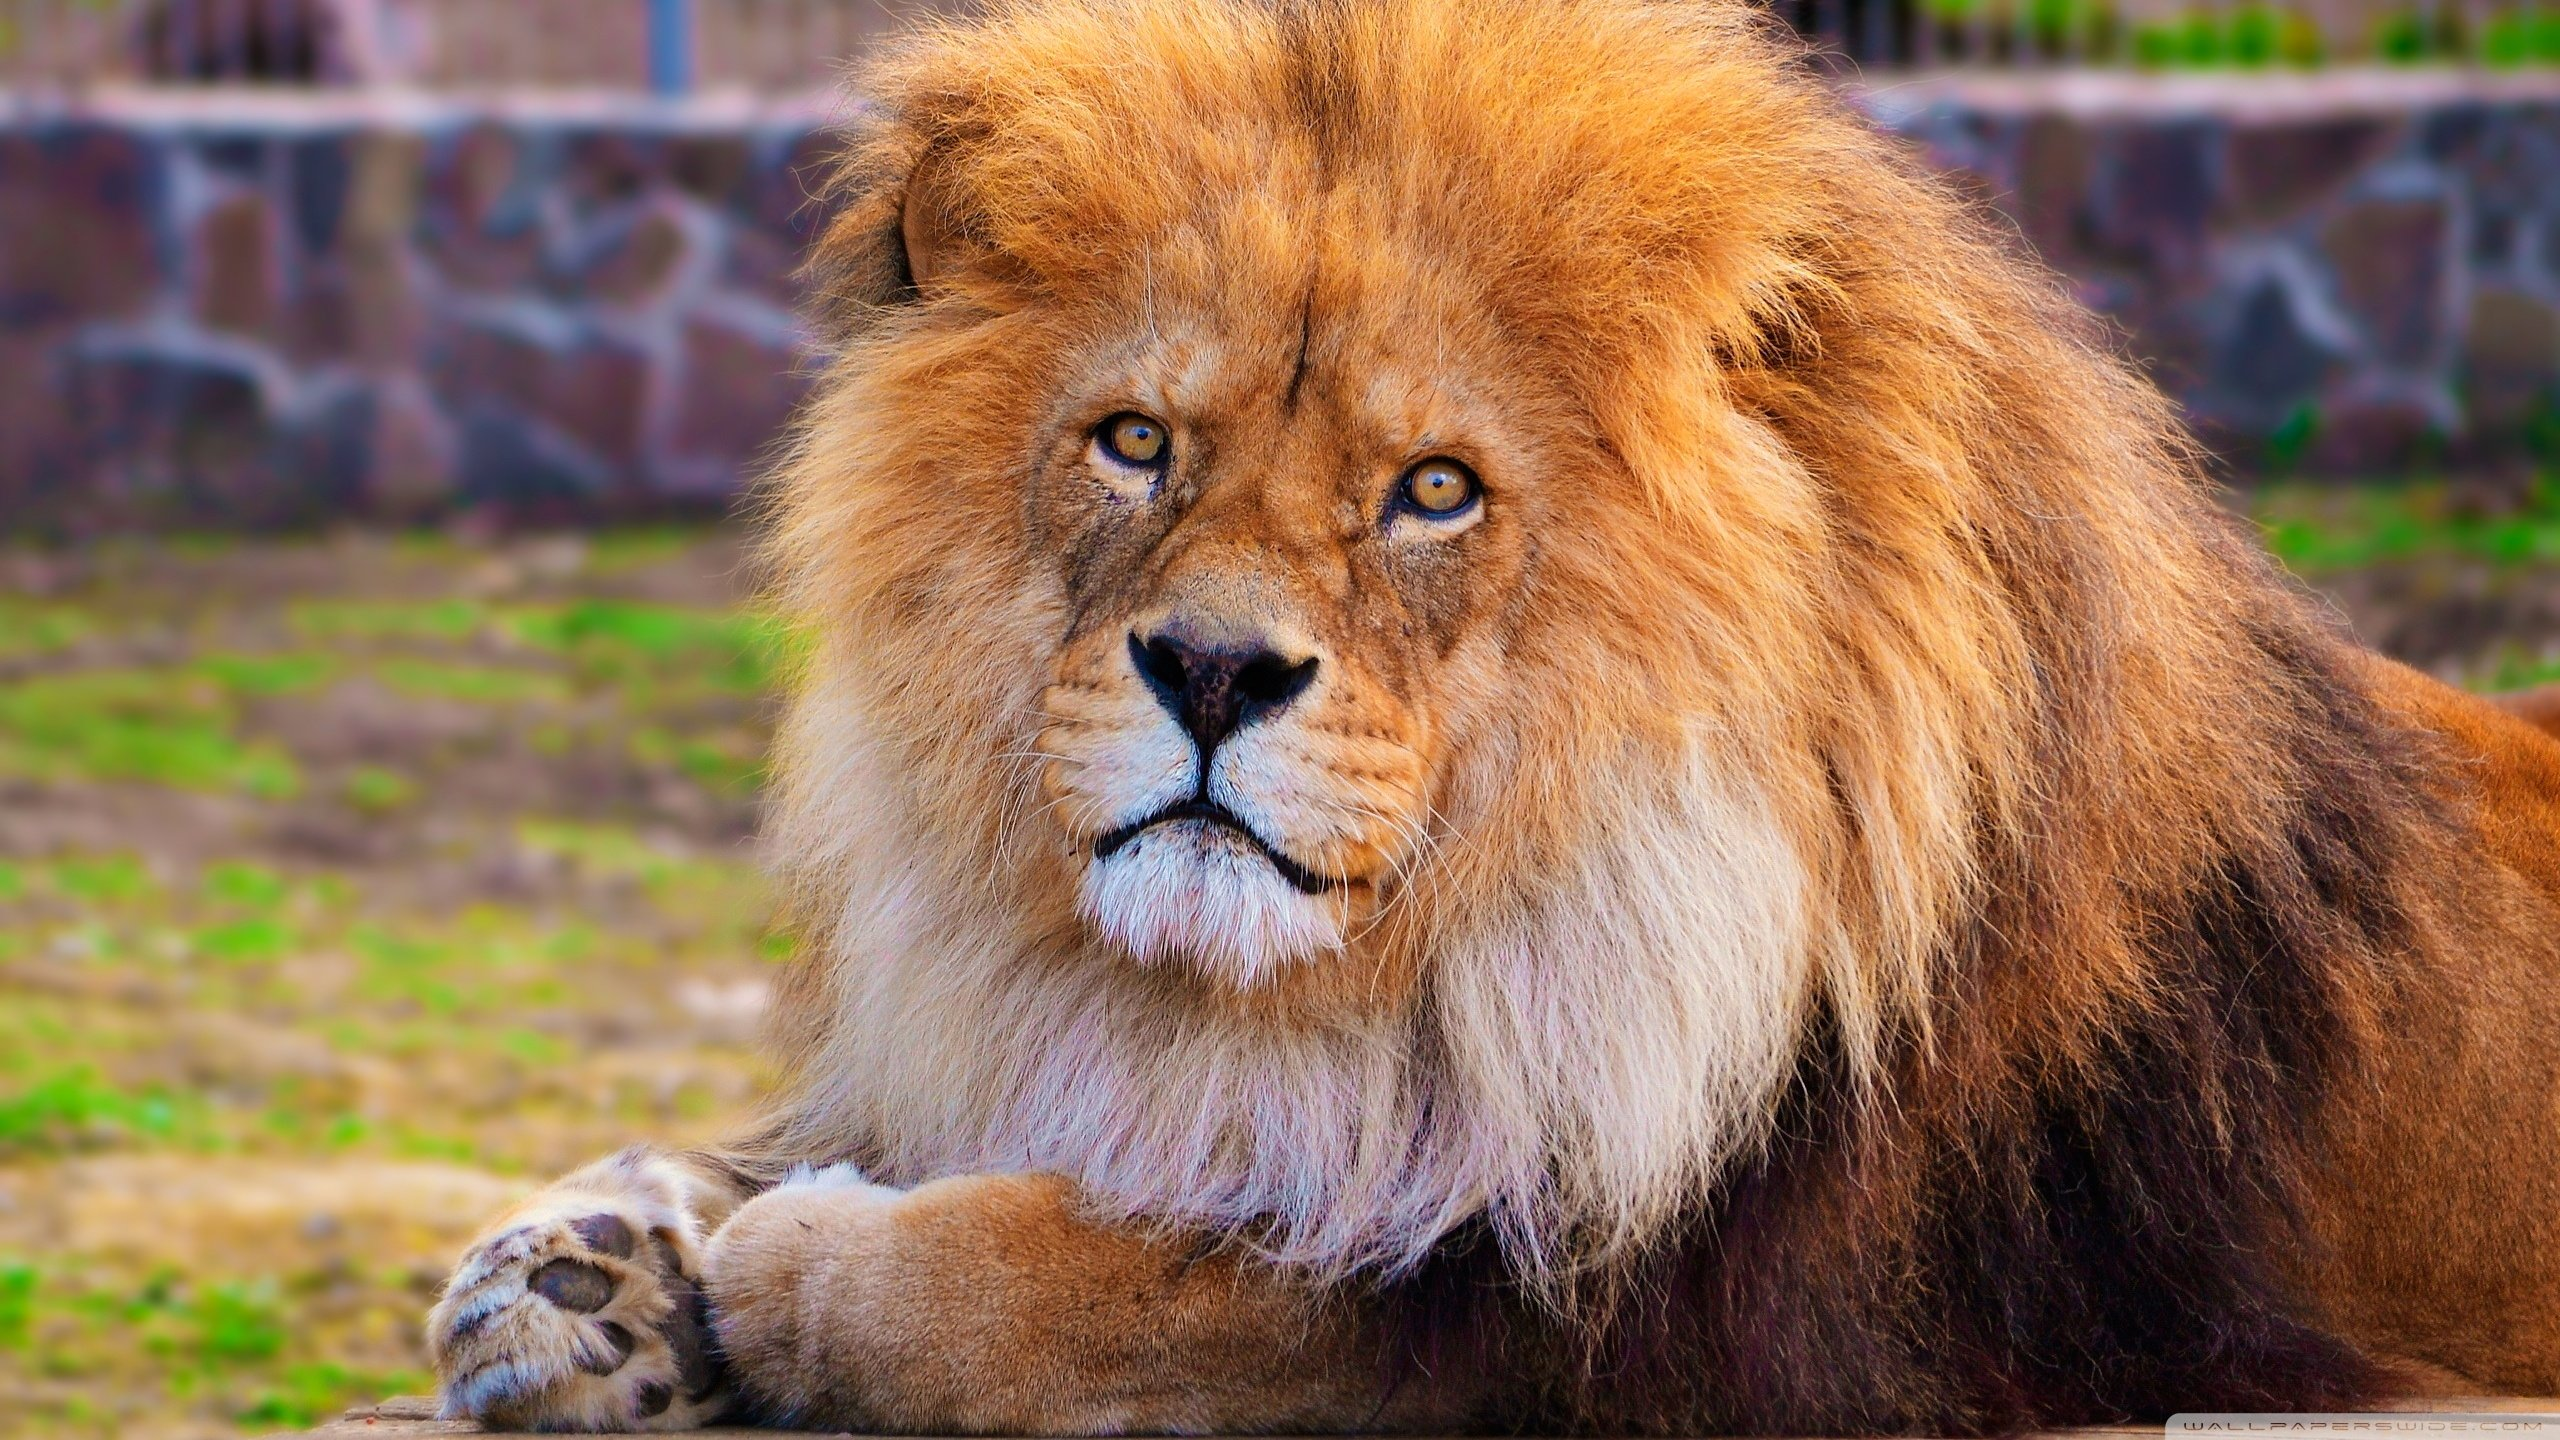 Awesome Lion free wallpaper ID:255457 for hd 2560x1440 desktop